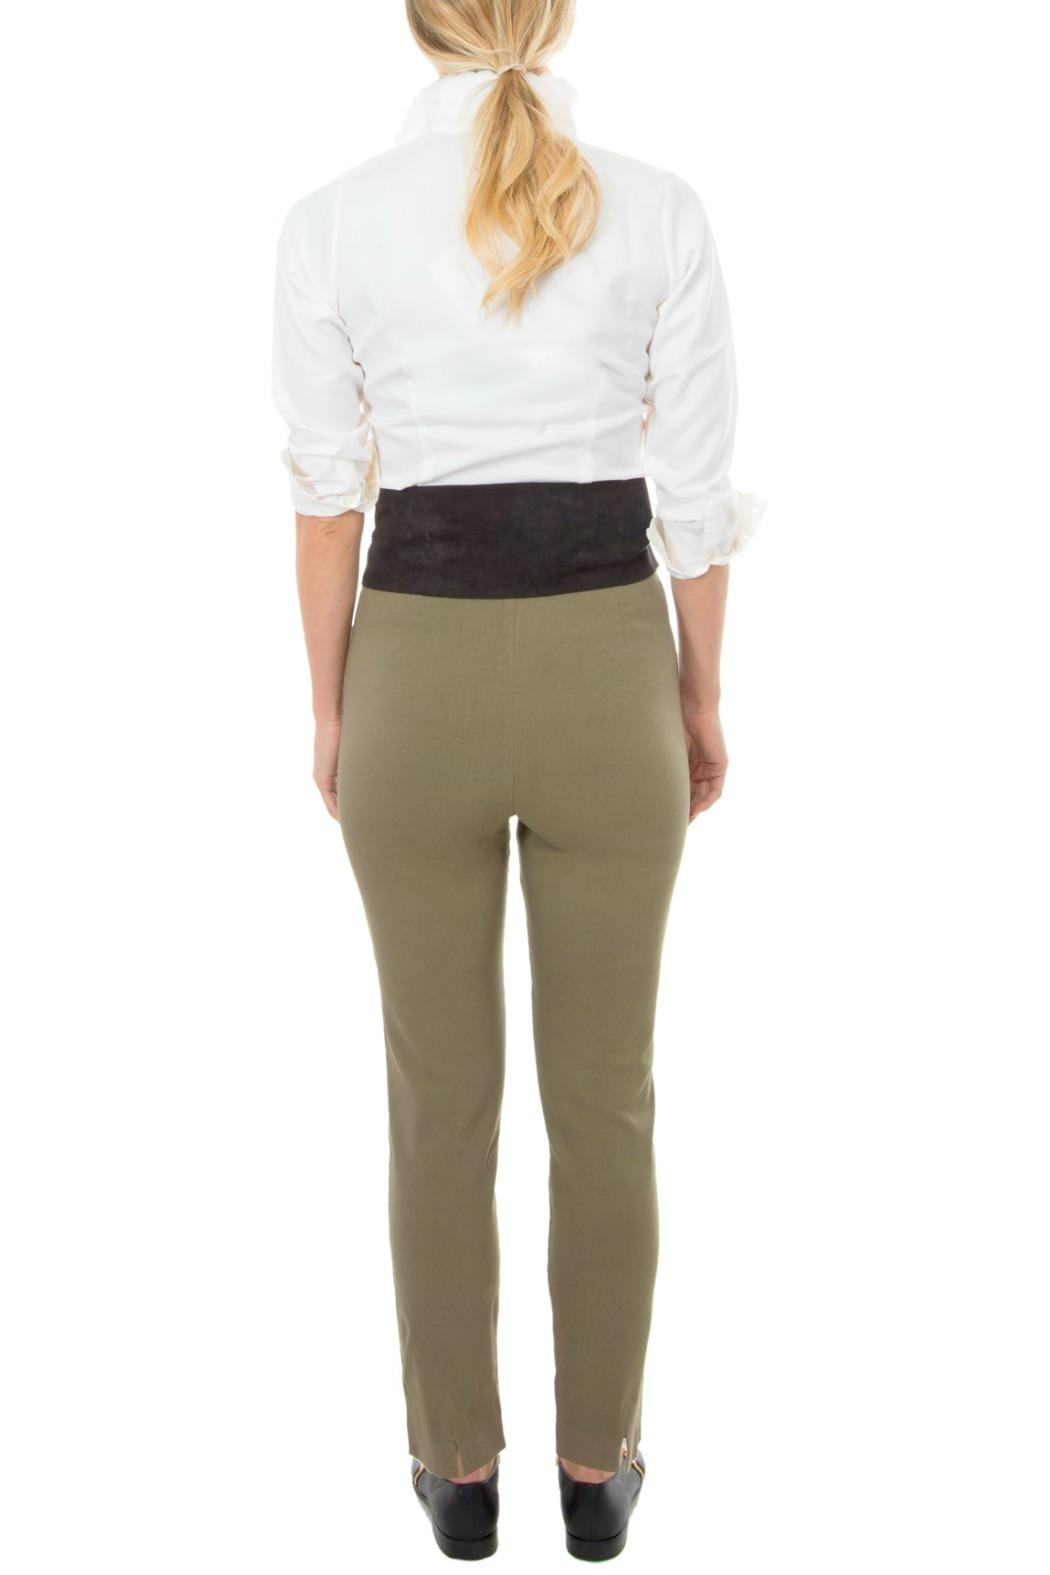 Gretchen Scott Gripe Less Pant - Front Full Image